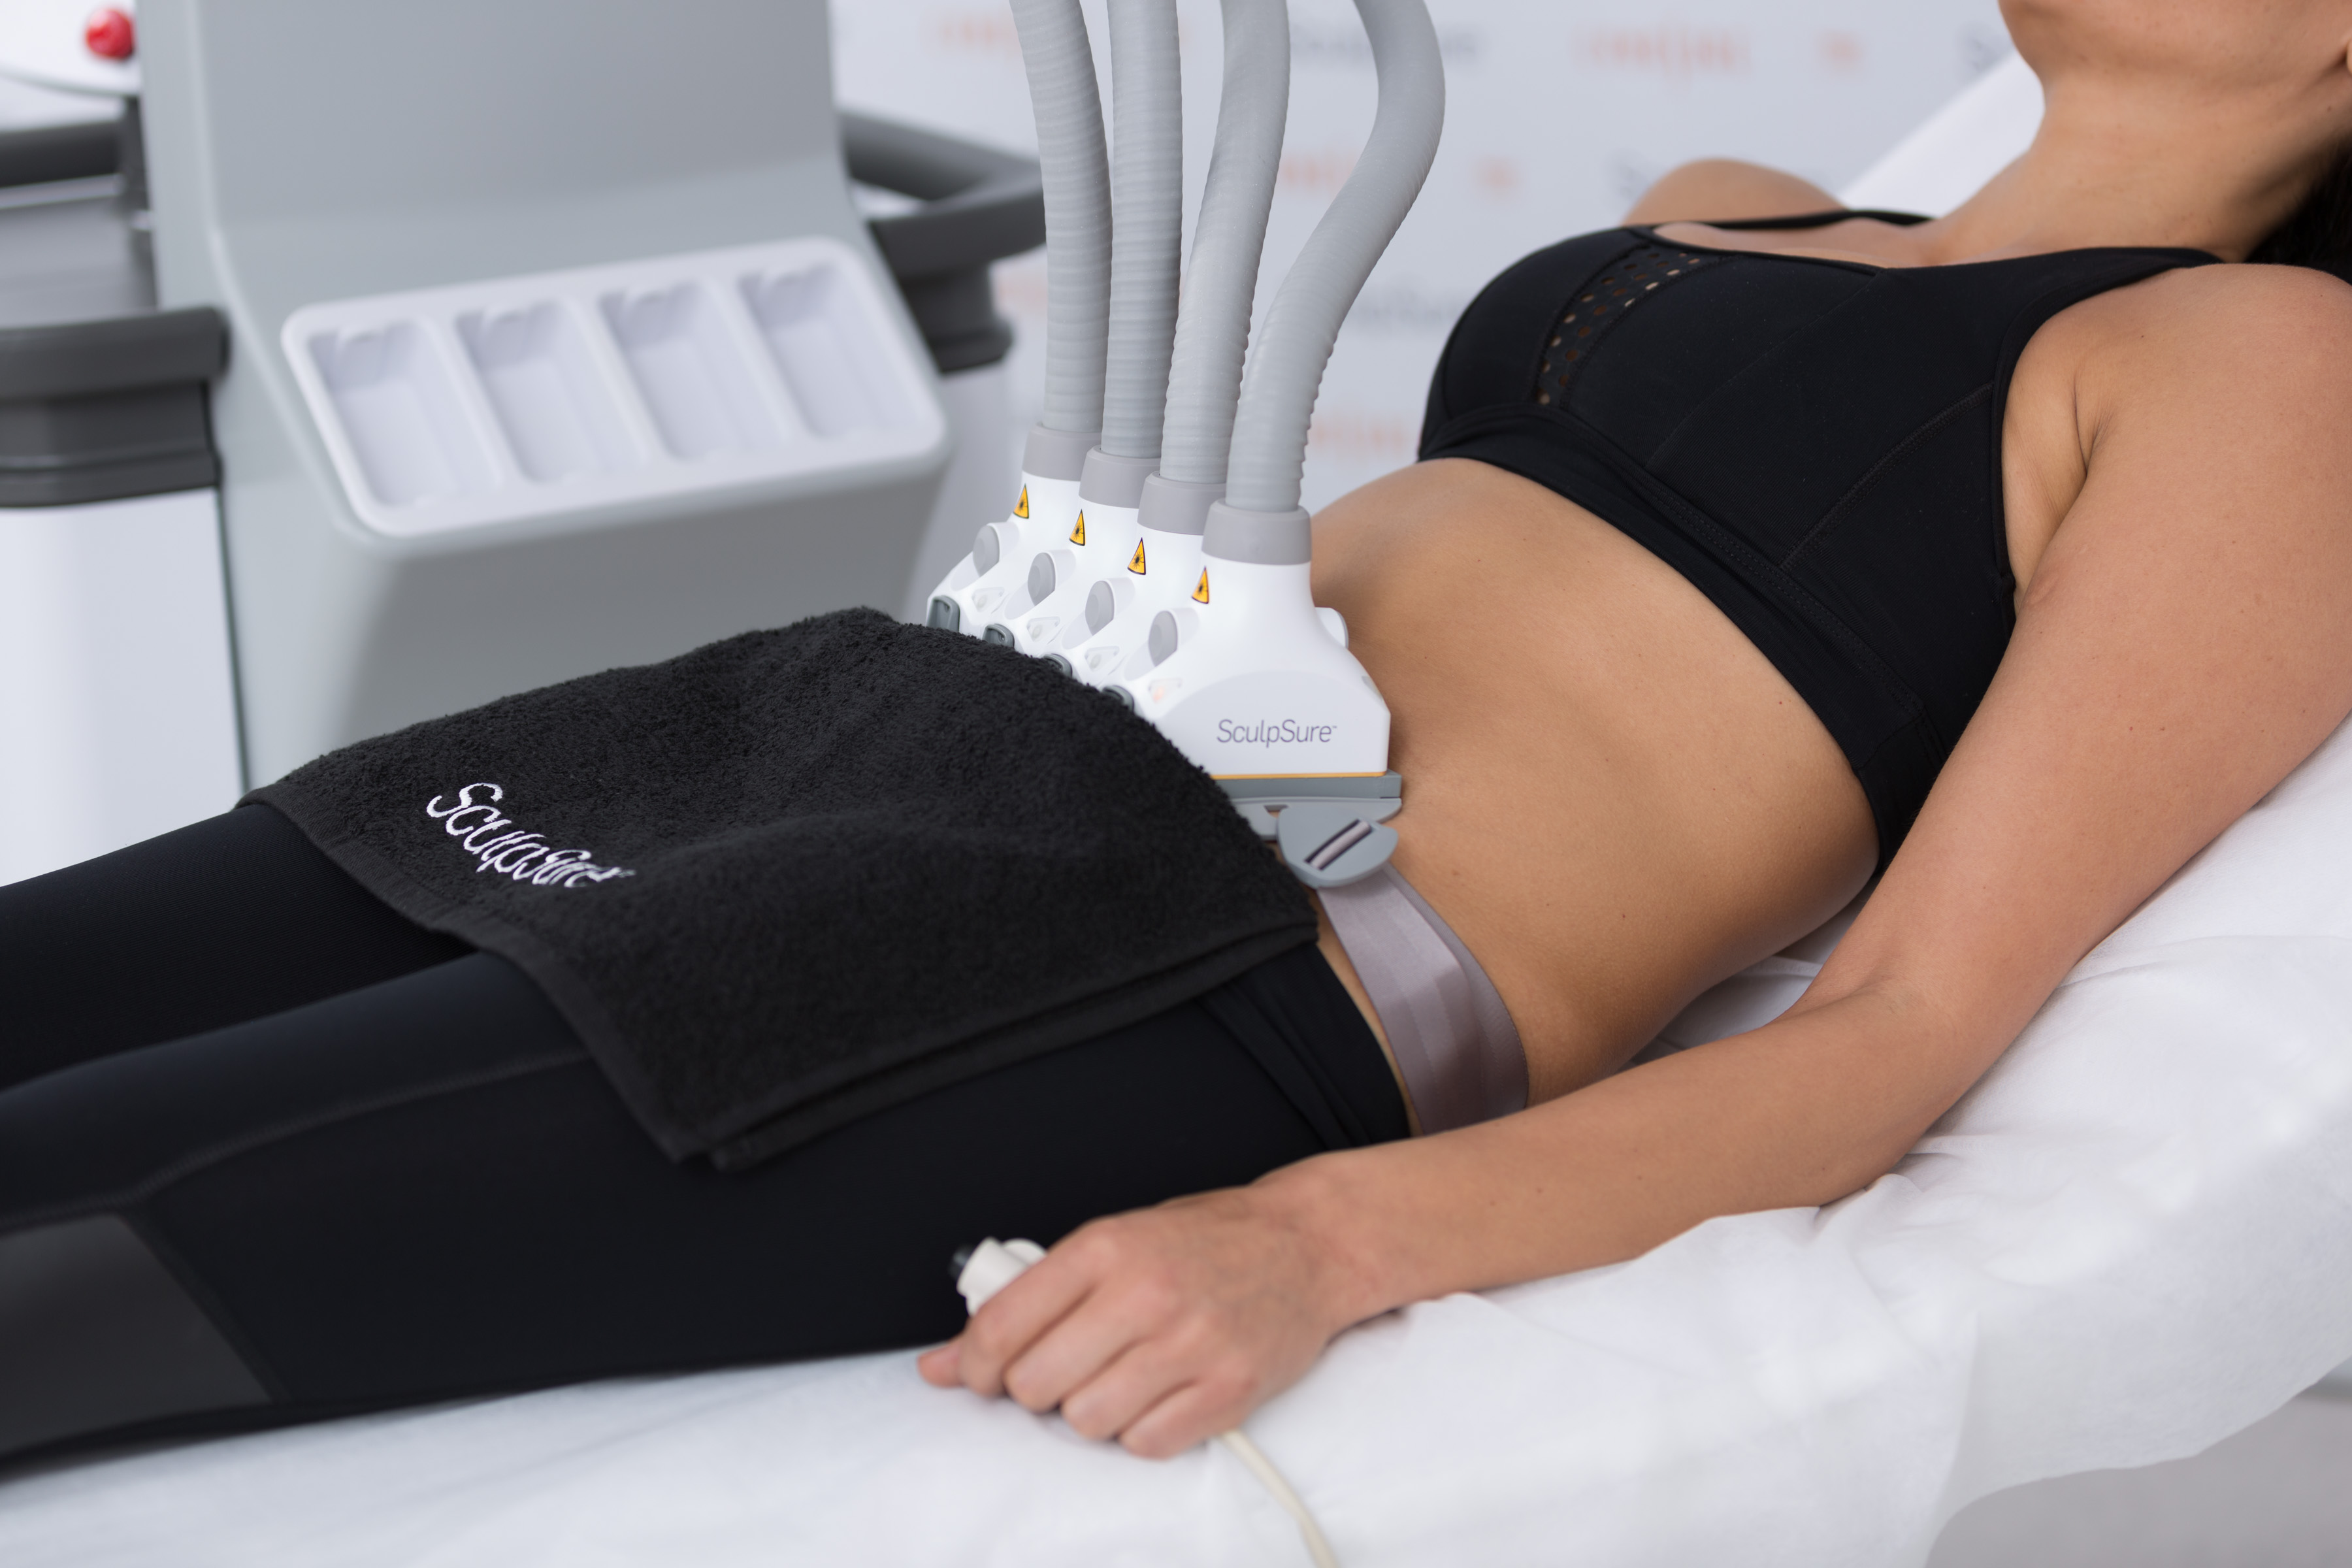 What to Do After Getting SculpSure